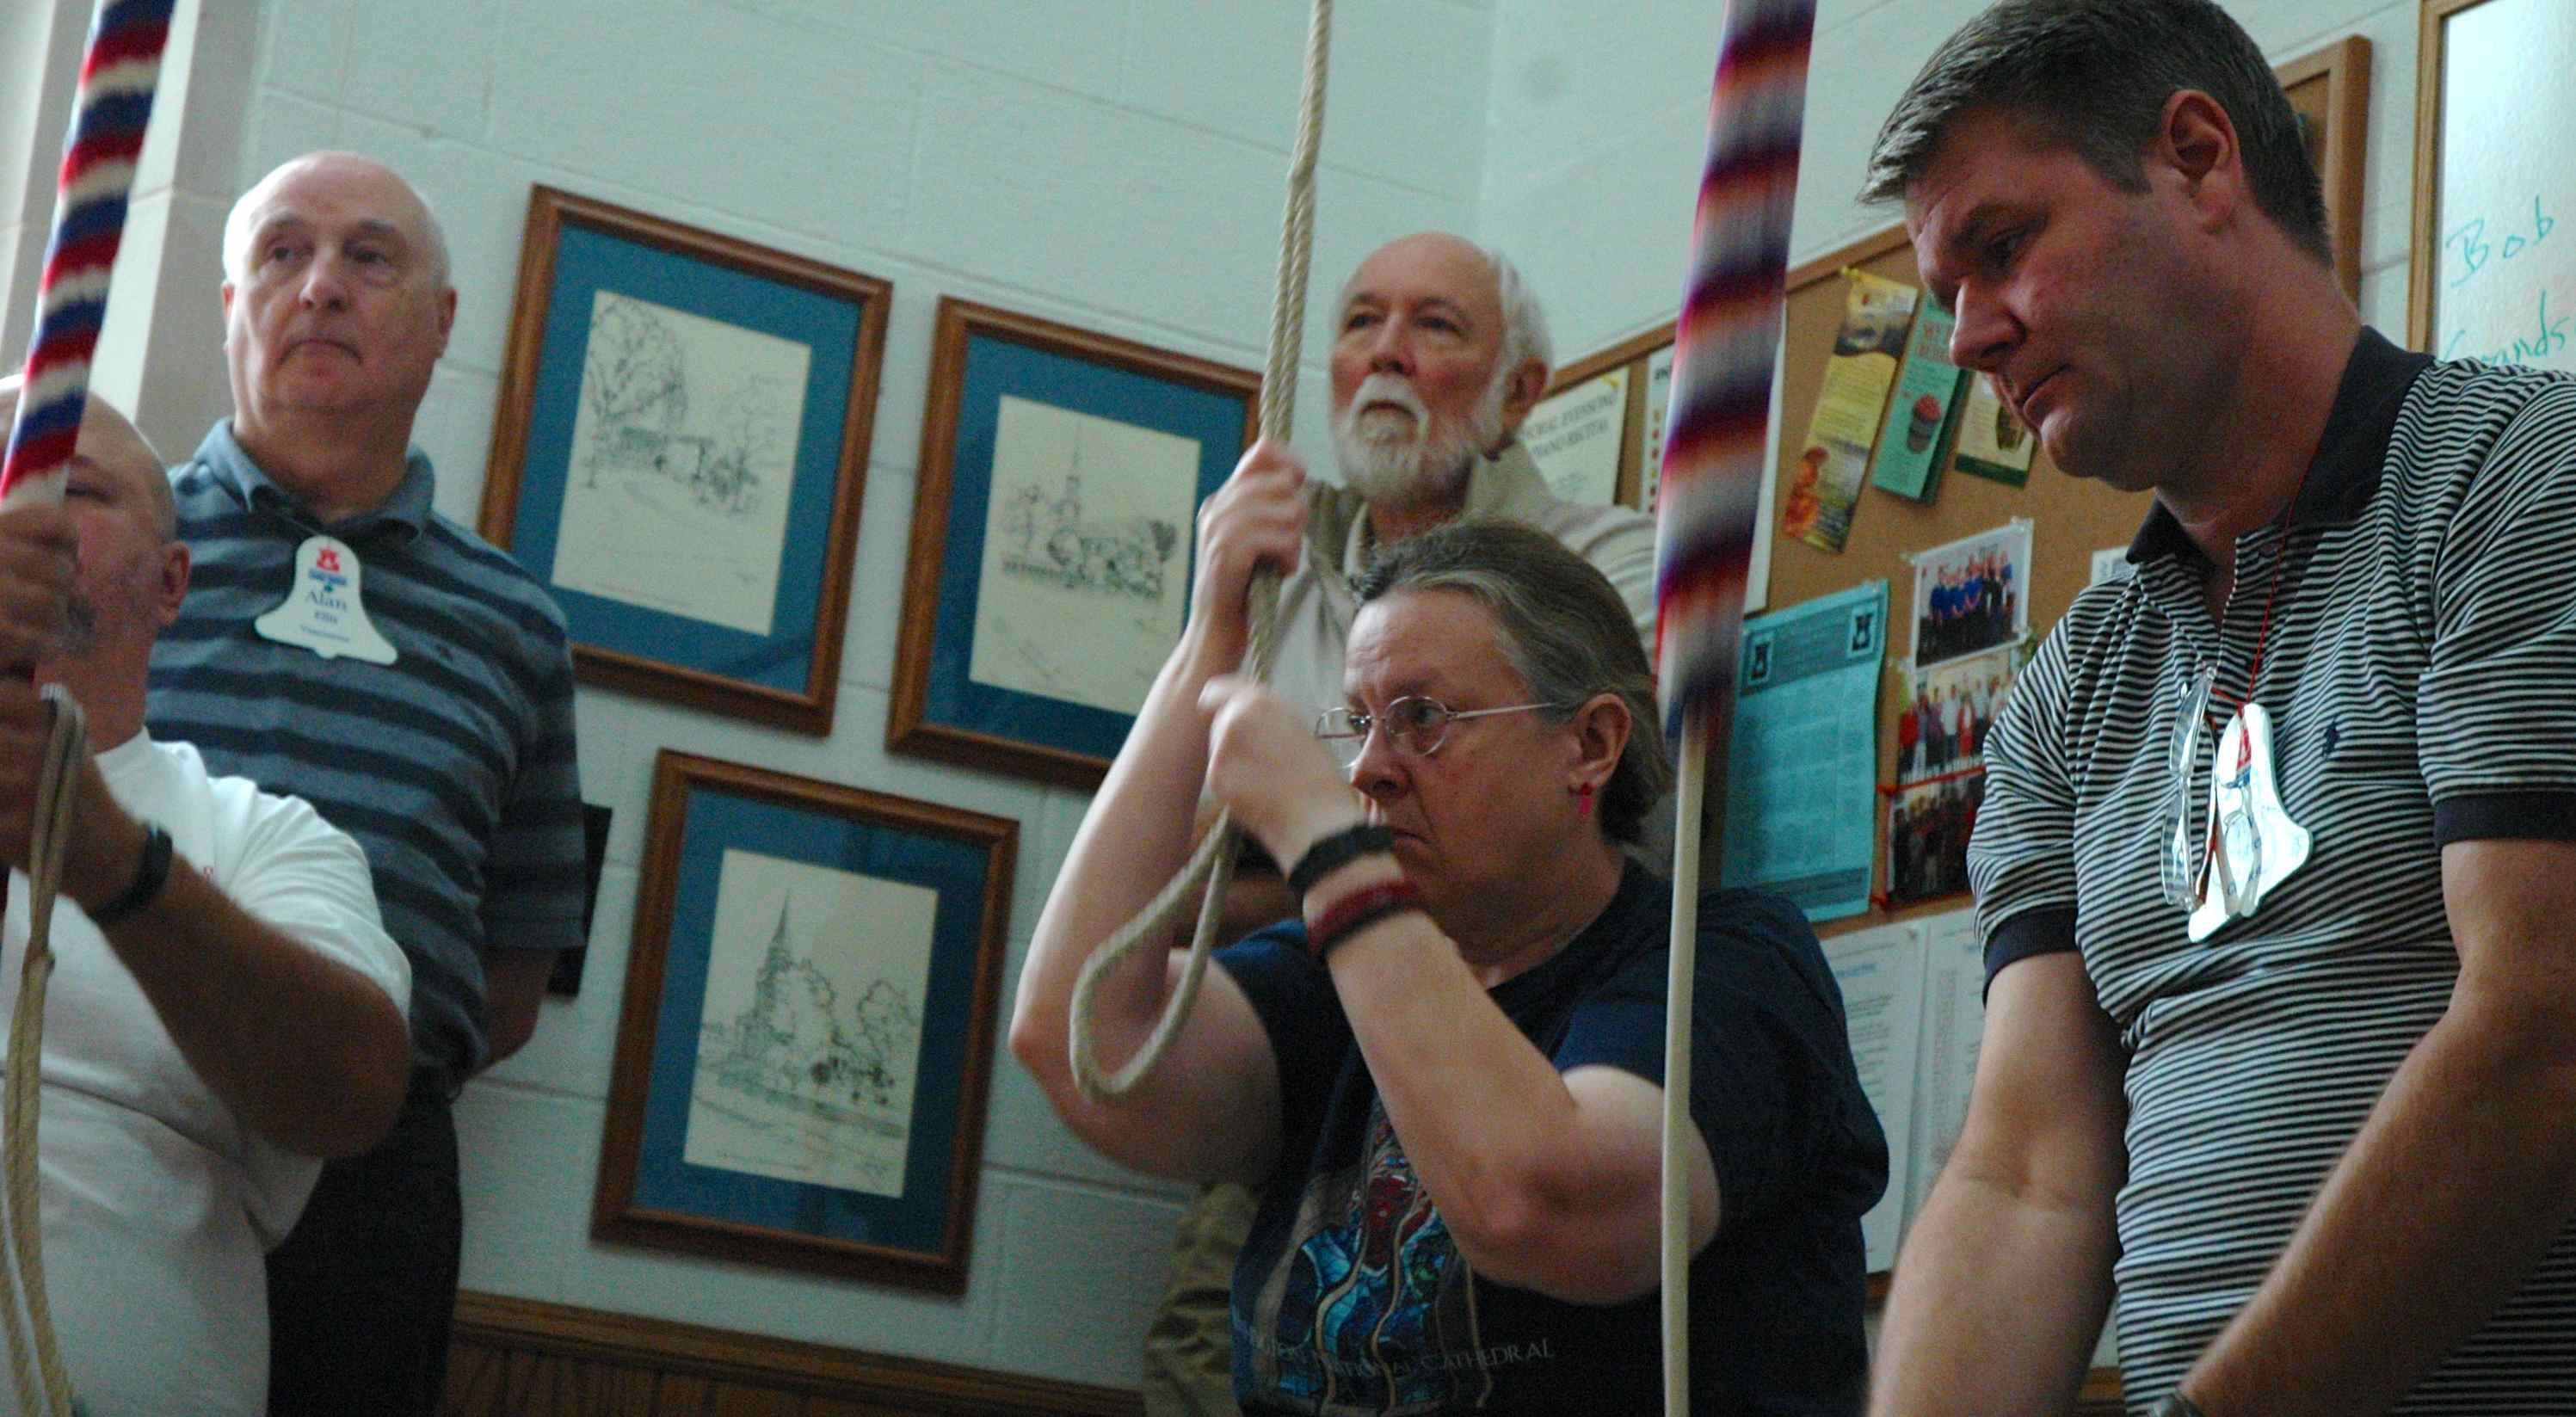 Three ringers in action pulling ropes with looks of concentration. Two observers standing behind.